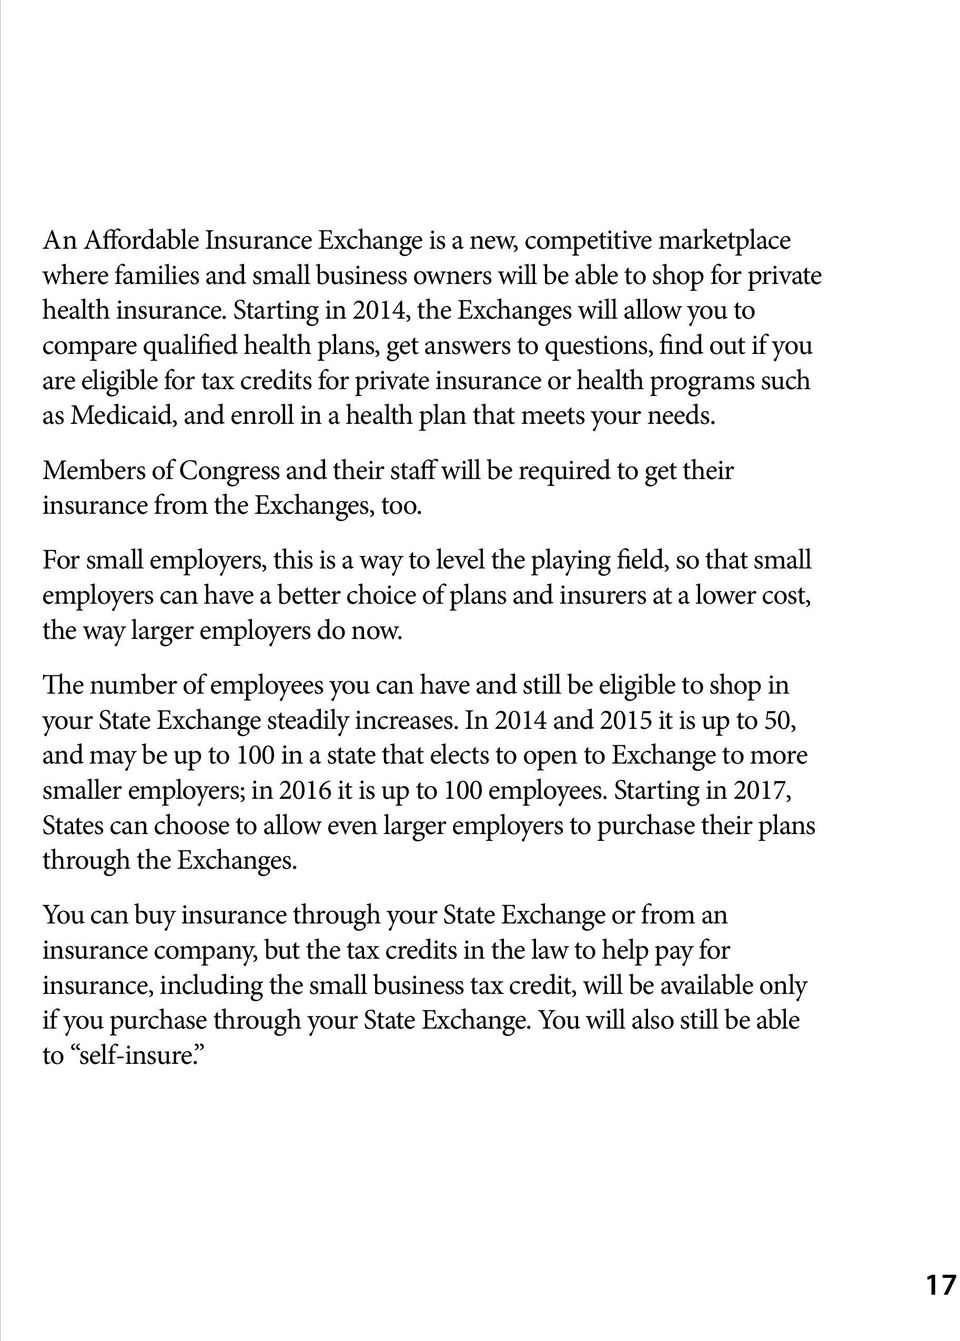 as Medicaid, and enroll in a health plan that meets your needs. Members of Congress and their staff will be required to get their insurance from the Exchanges, too.